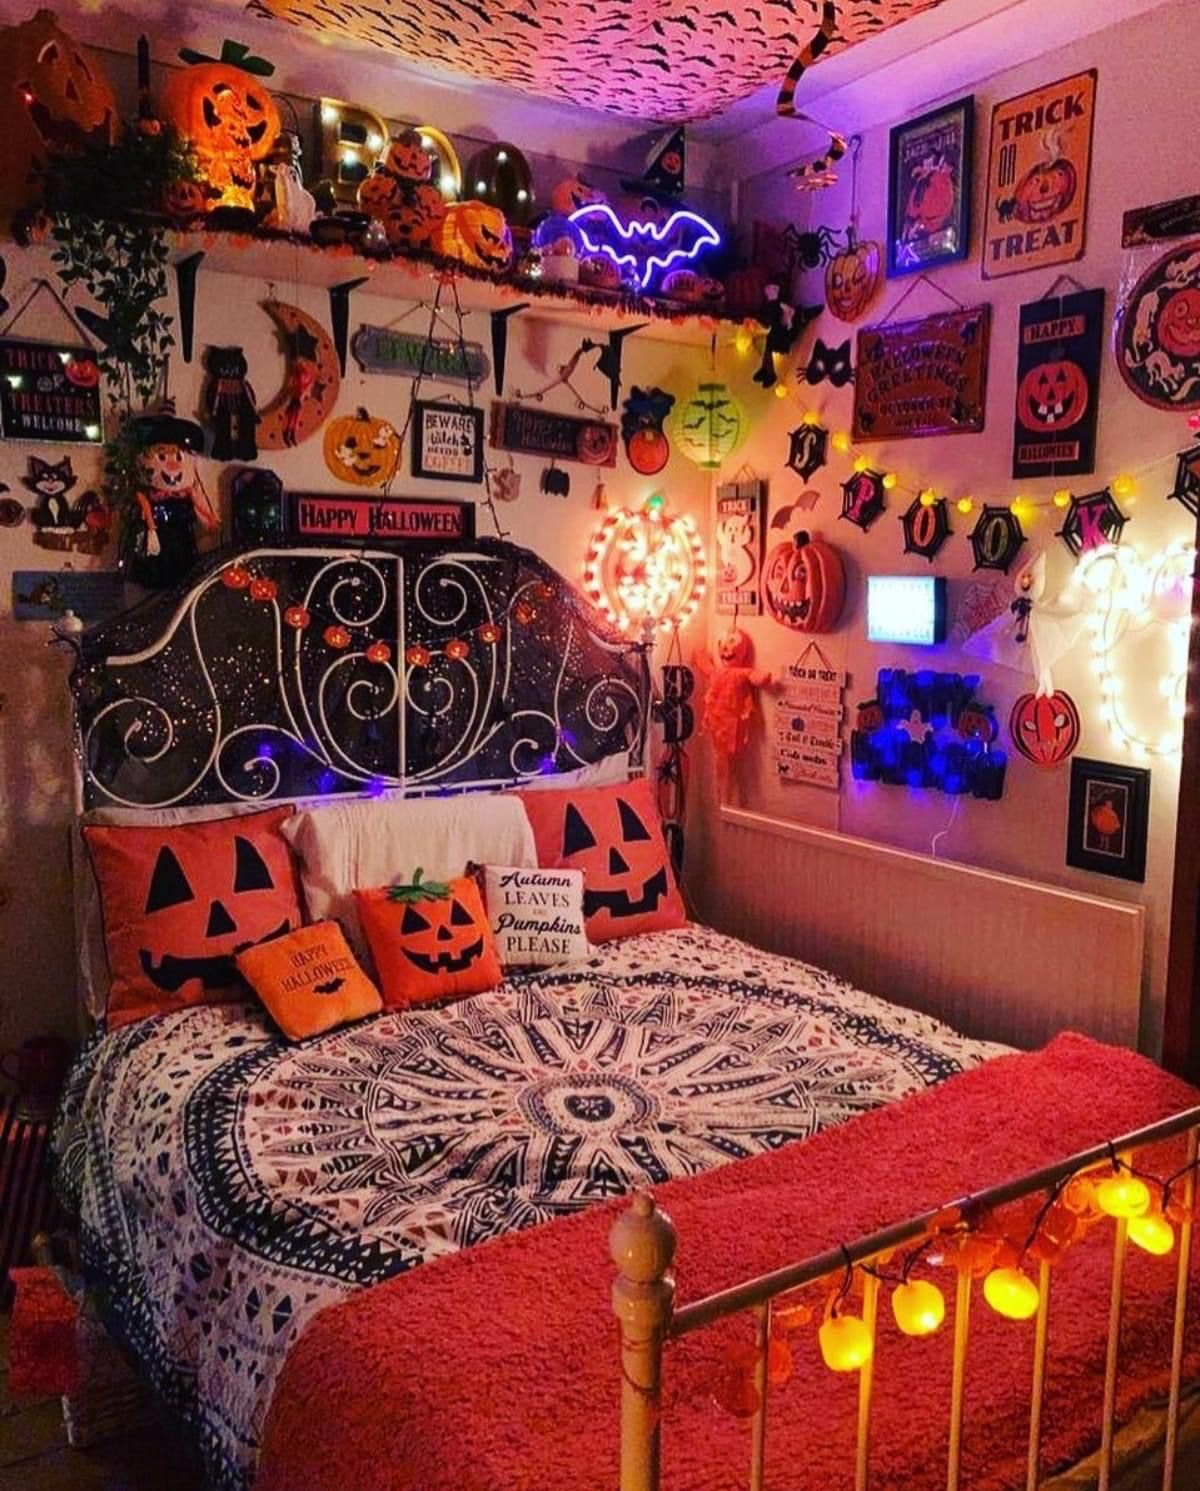 Best Halloween Decorations Austin 2020 Pin by Sarah Austin on Halloween.. in 2020 | Halloween room